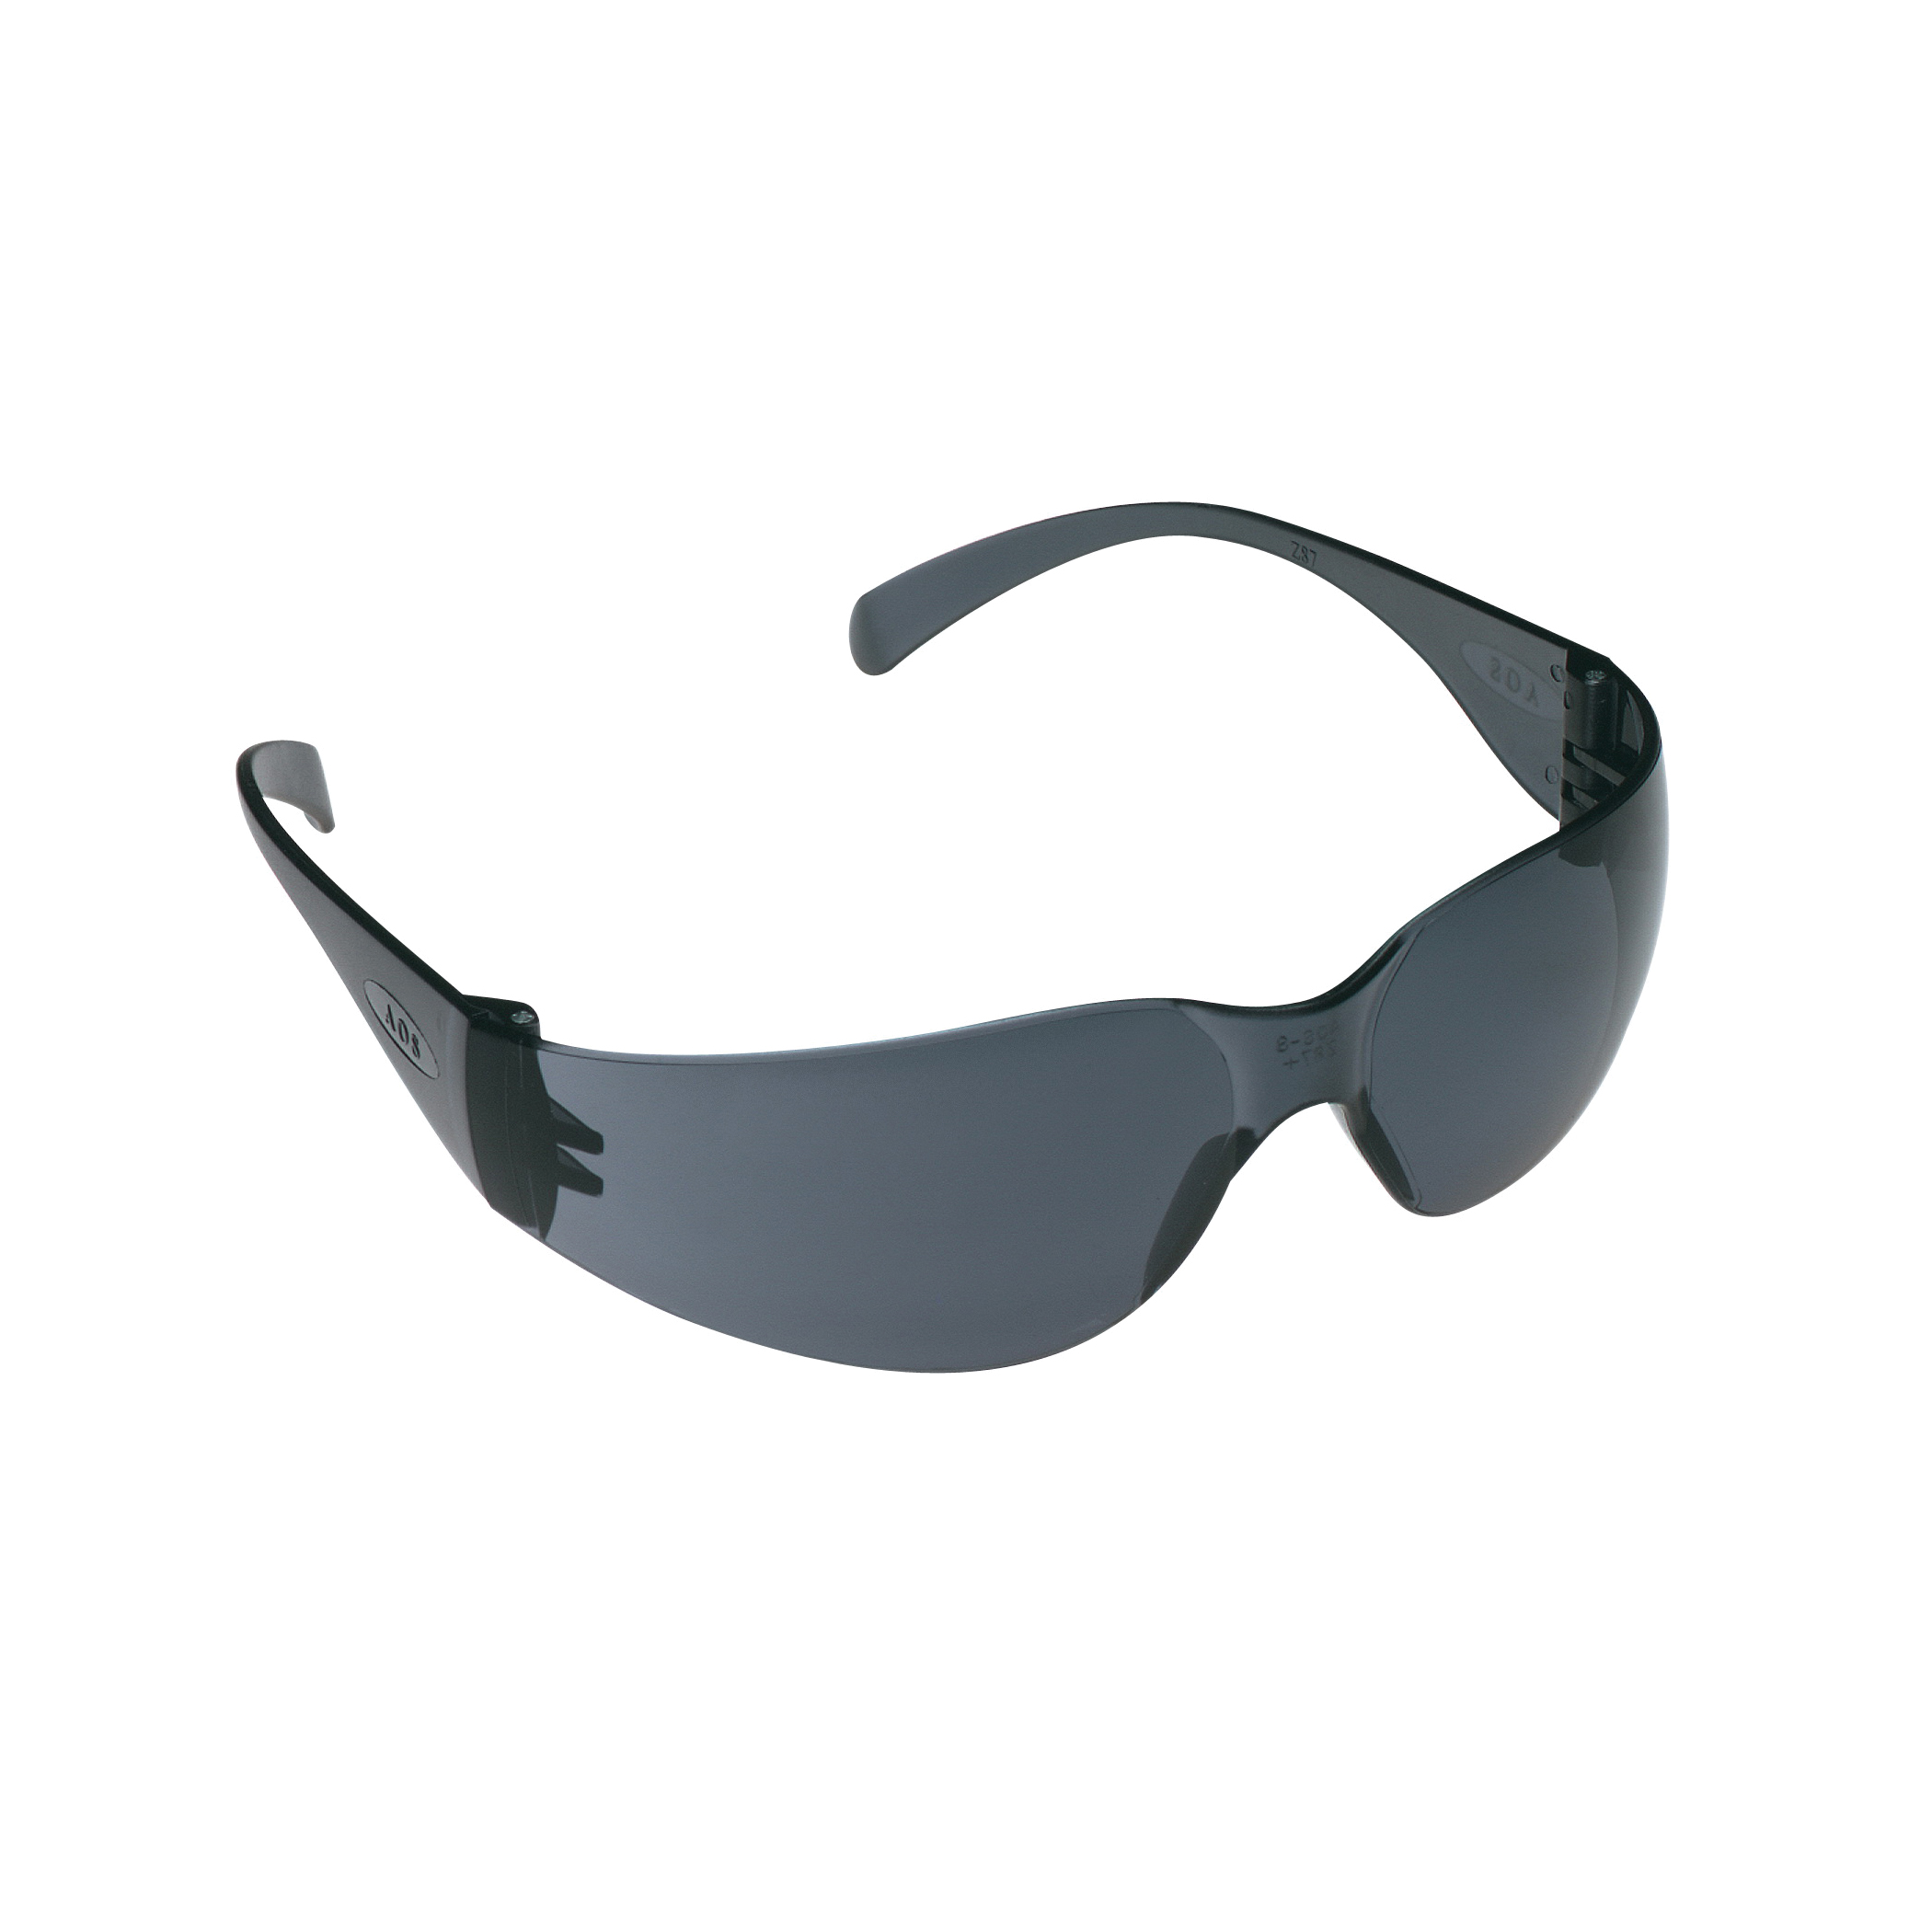 3M™ Virtua™ 078371-62102 11327-00000-20 Economy Protective Eyewear, Anti-Scratch/Hard Coat Gray Lens, Frameless/Wraparound Gray Polycarbonate Frame, Polycarbonate Lens, Specifications Met: ANSI Z87.1-2015